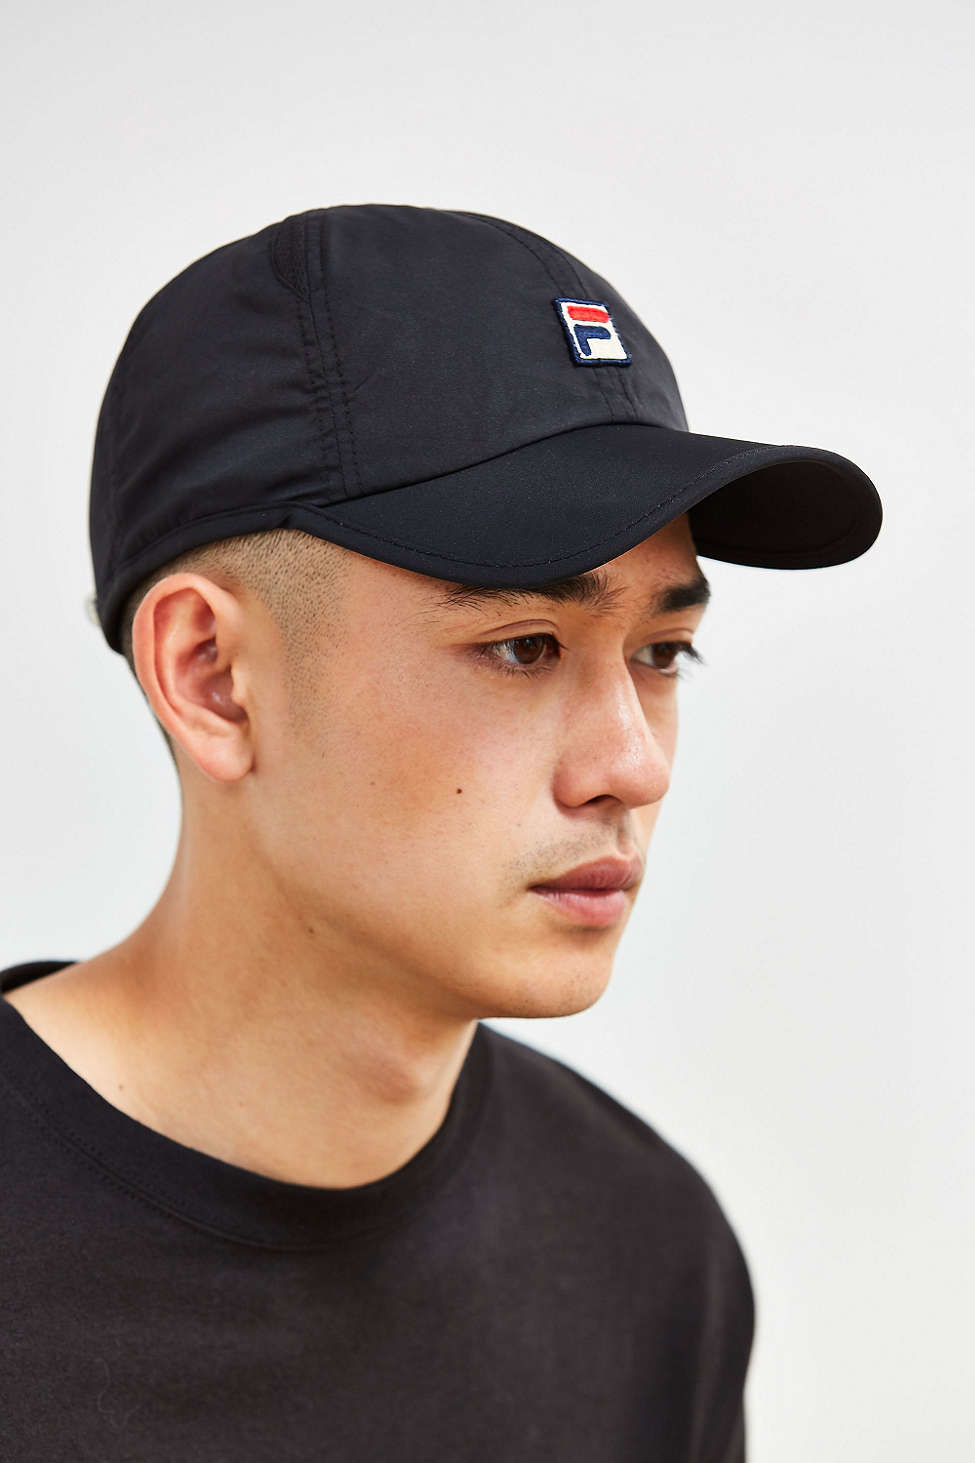 Lyst - Fila Runner Baseball Hat in Black for Men a815737d0a7c